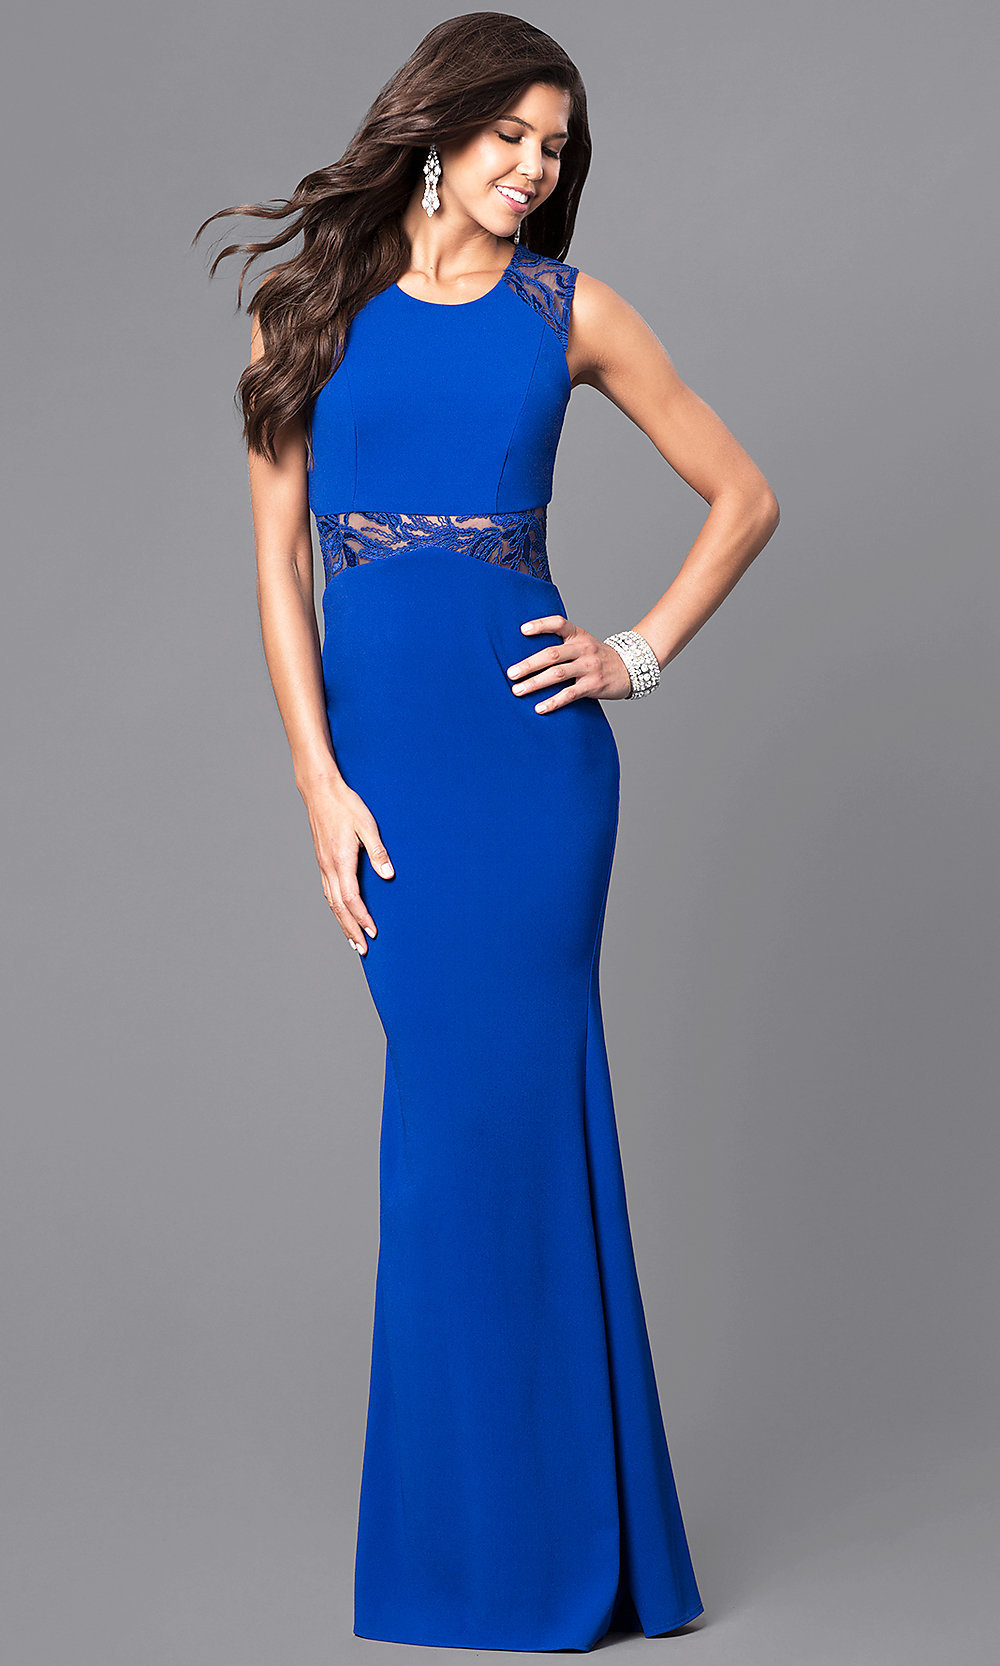 Sheer-Lace Waisted Prom Dress in Royal Blue-PromGirl